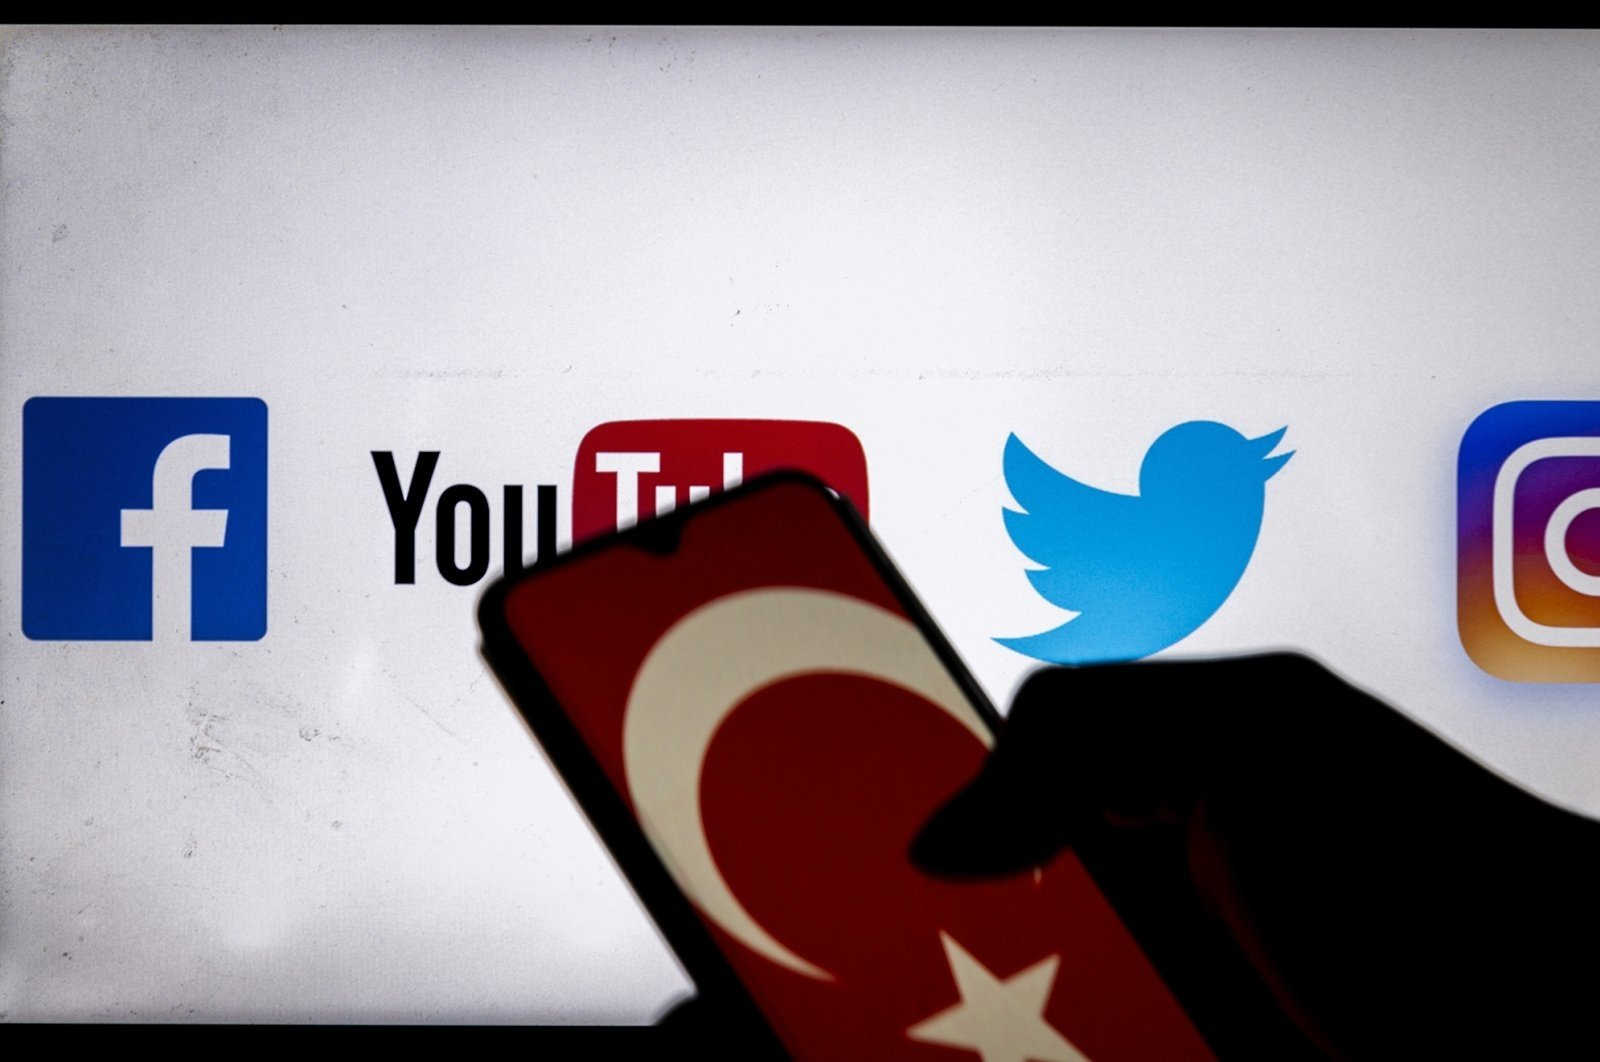 A Turkish flag is seen displayed on a smartphone with social media applications in the background, Dec. 25, 2020. (Getty Images)